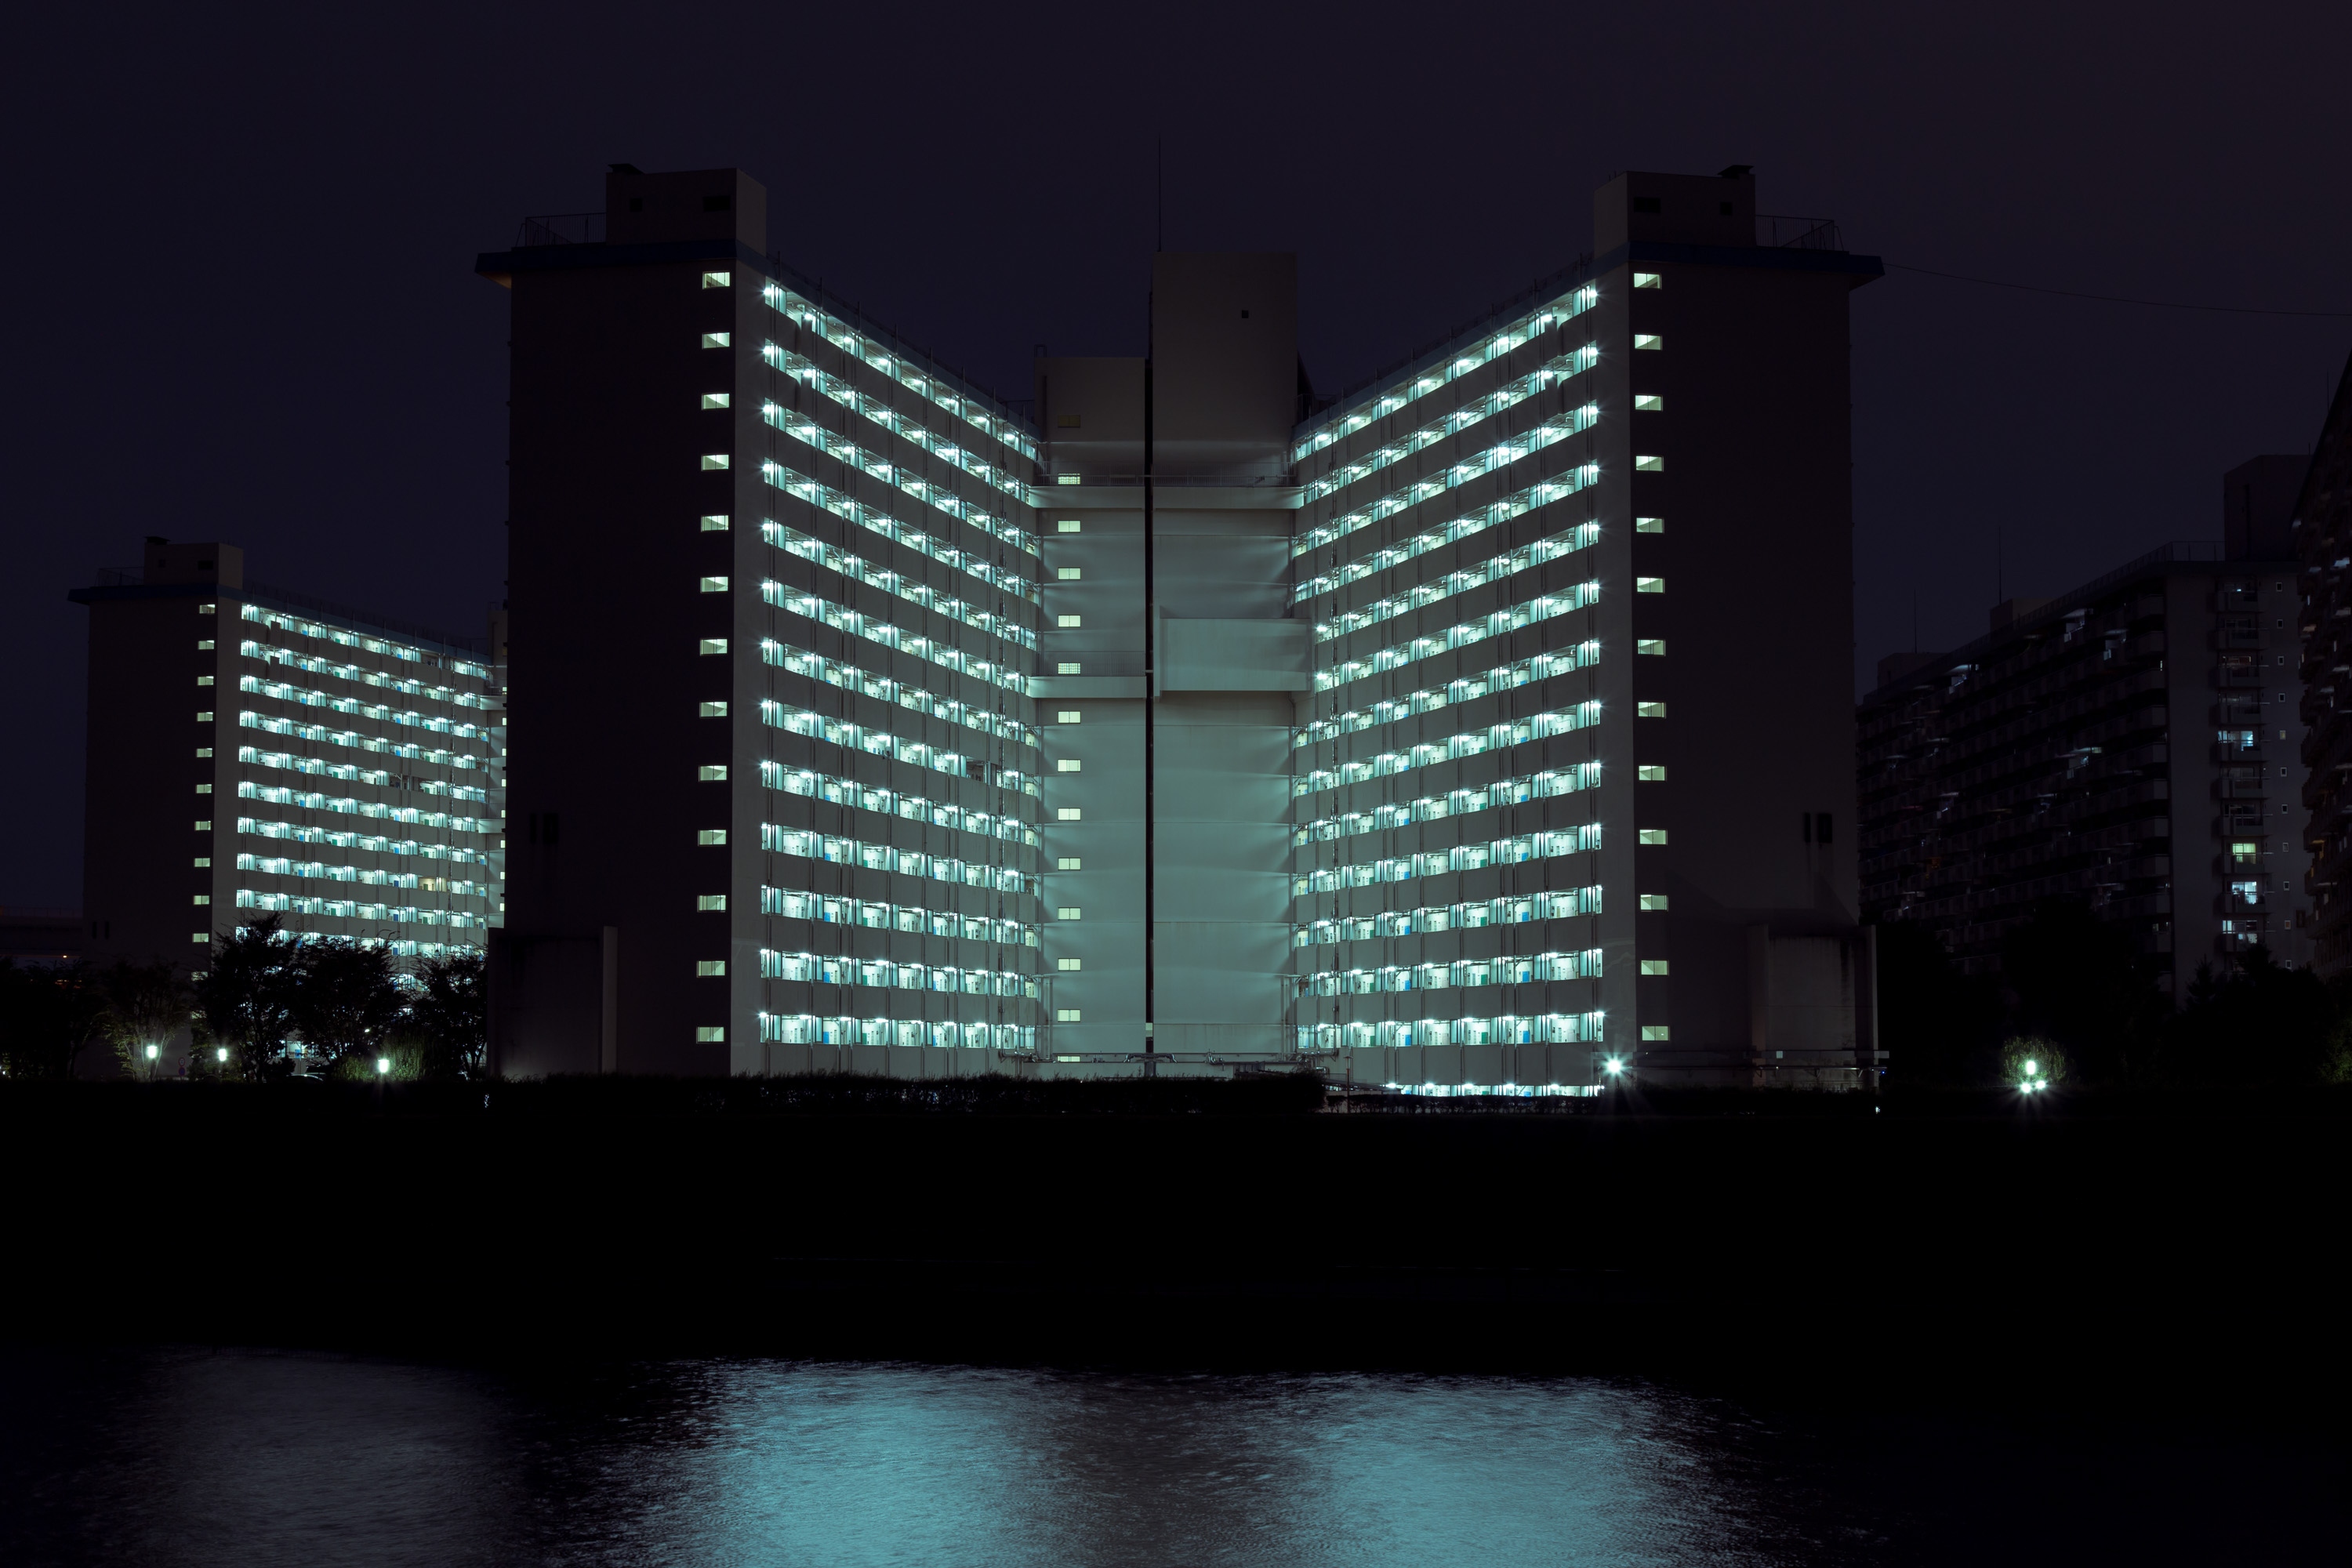 Danchi Dreams Photographic Series by Cody Ellingham, ONLY infoTech